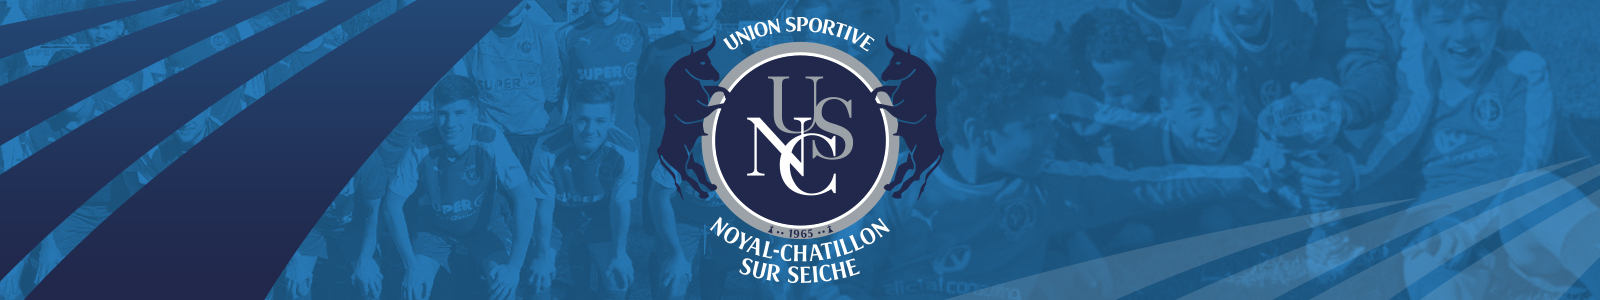 US NOYAL-CHATILLON FOOTBALL : site officiel du club de foot de NOYAL CHATILLON SUR SEICH - footeo